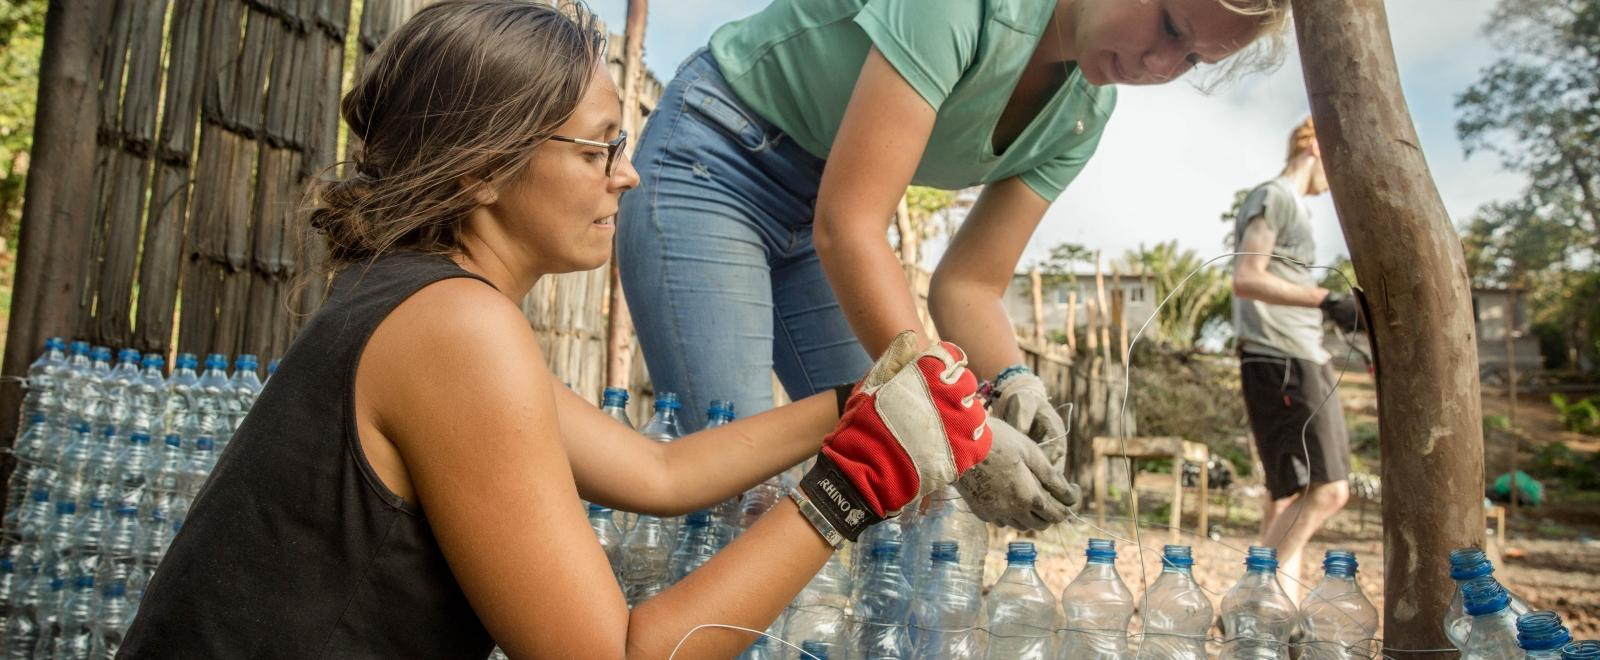 Projects Abroad Conservation volunteers build an eco-wall using recycled plastic in the Galapagos Islands, Ecuador.